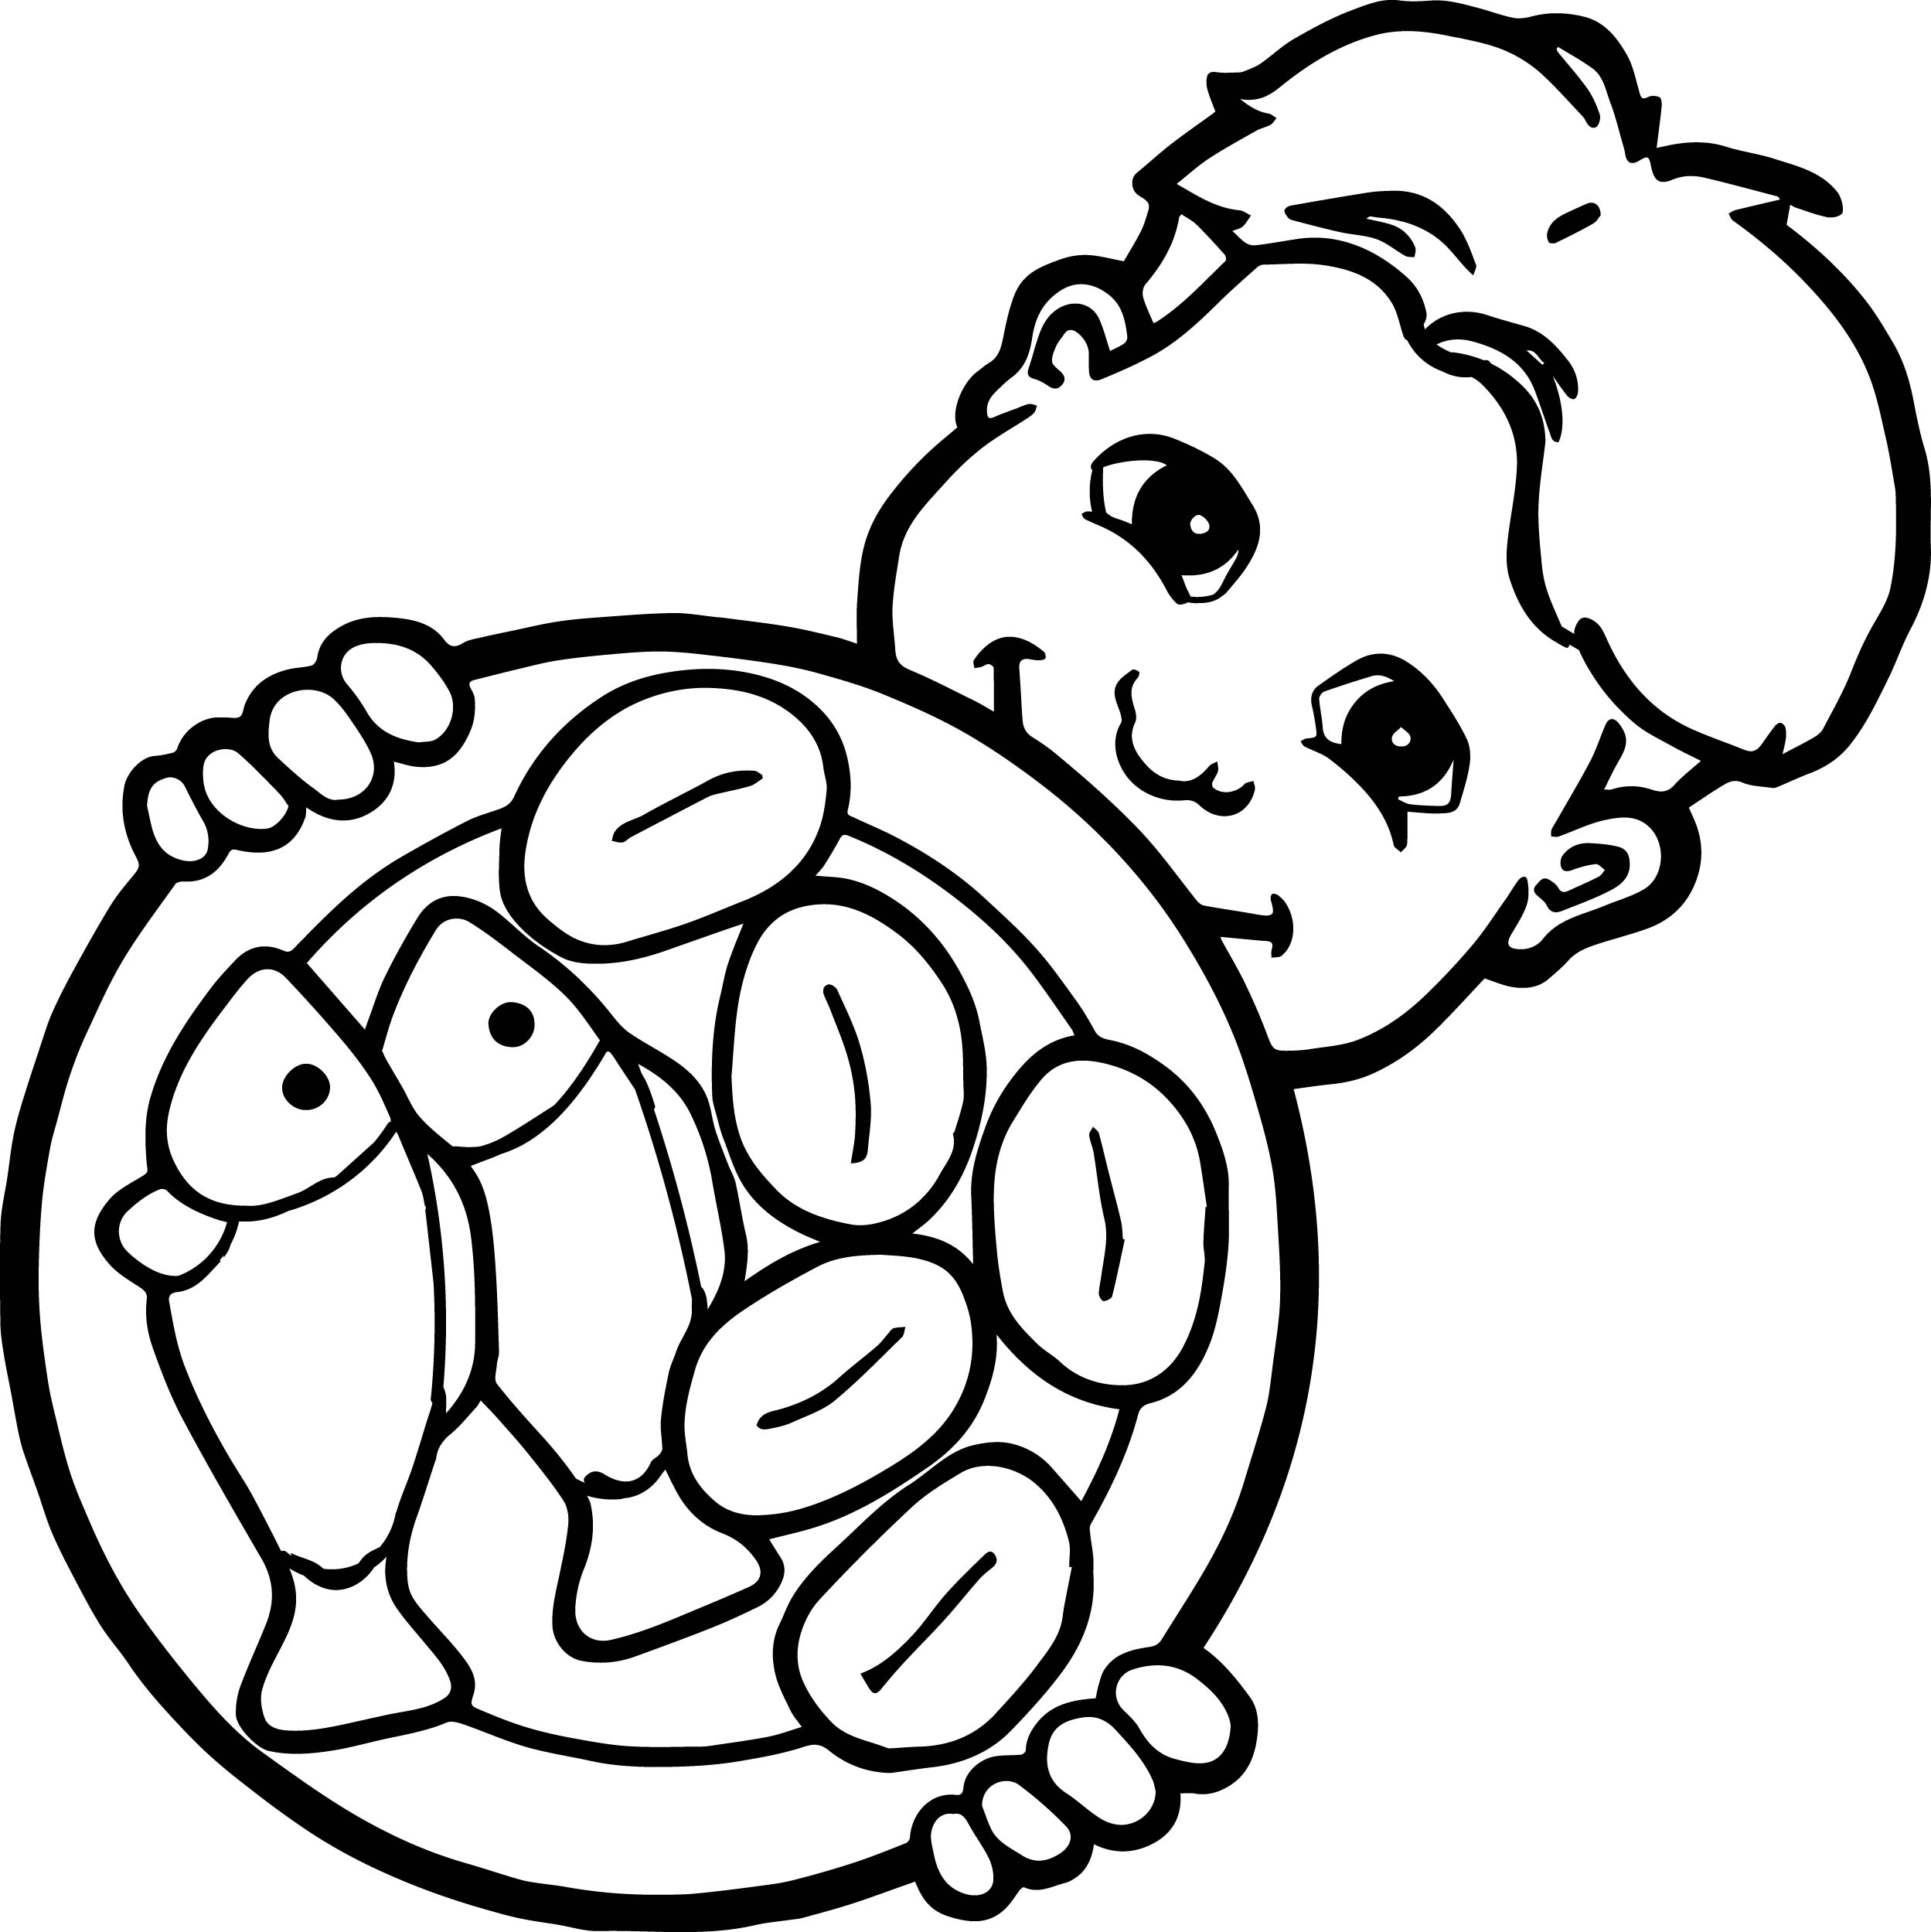 5 loaves and 2 fish child coloring page - Childrens Colouring Pictures 2